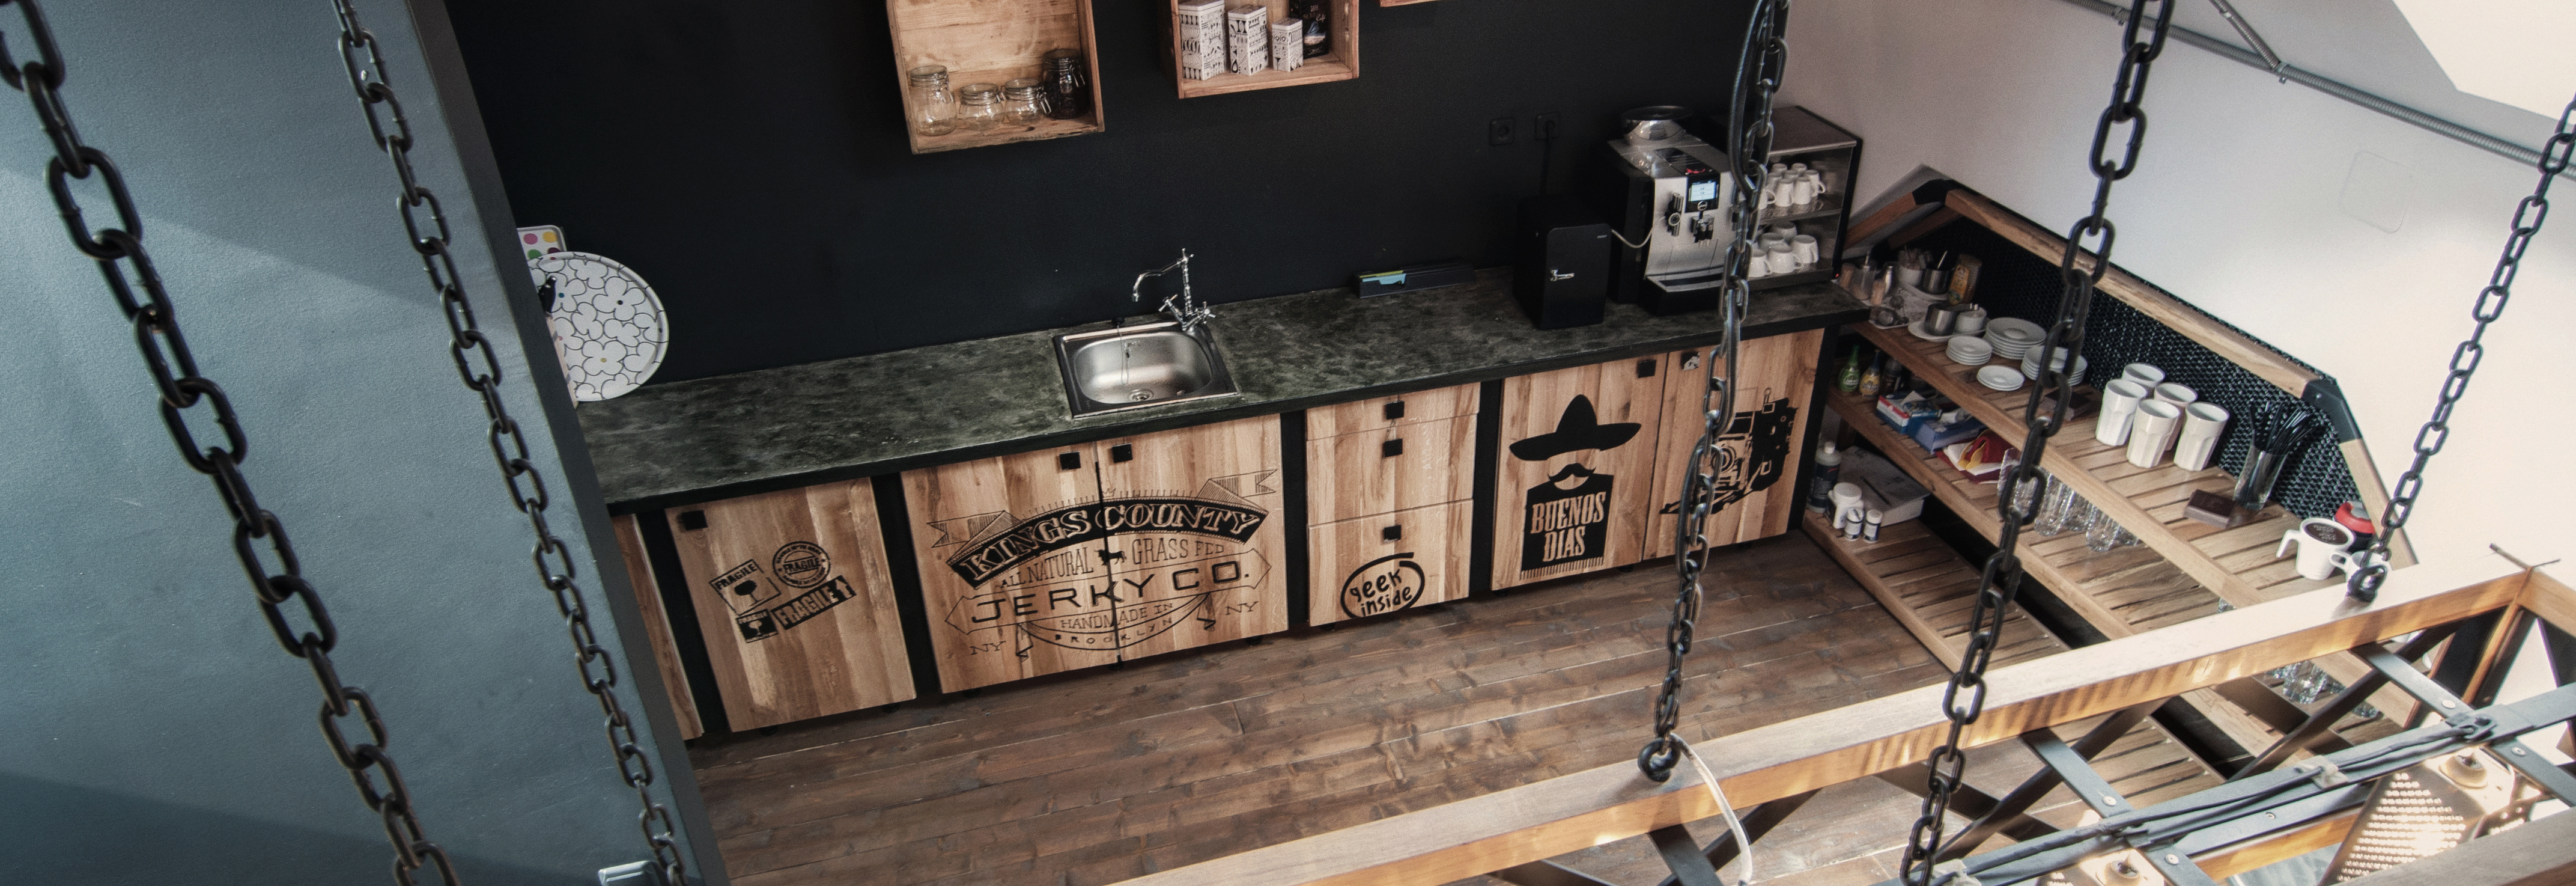 timisoara-espresoh-attic-open-space-coffe-shop-office-the-bar